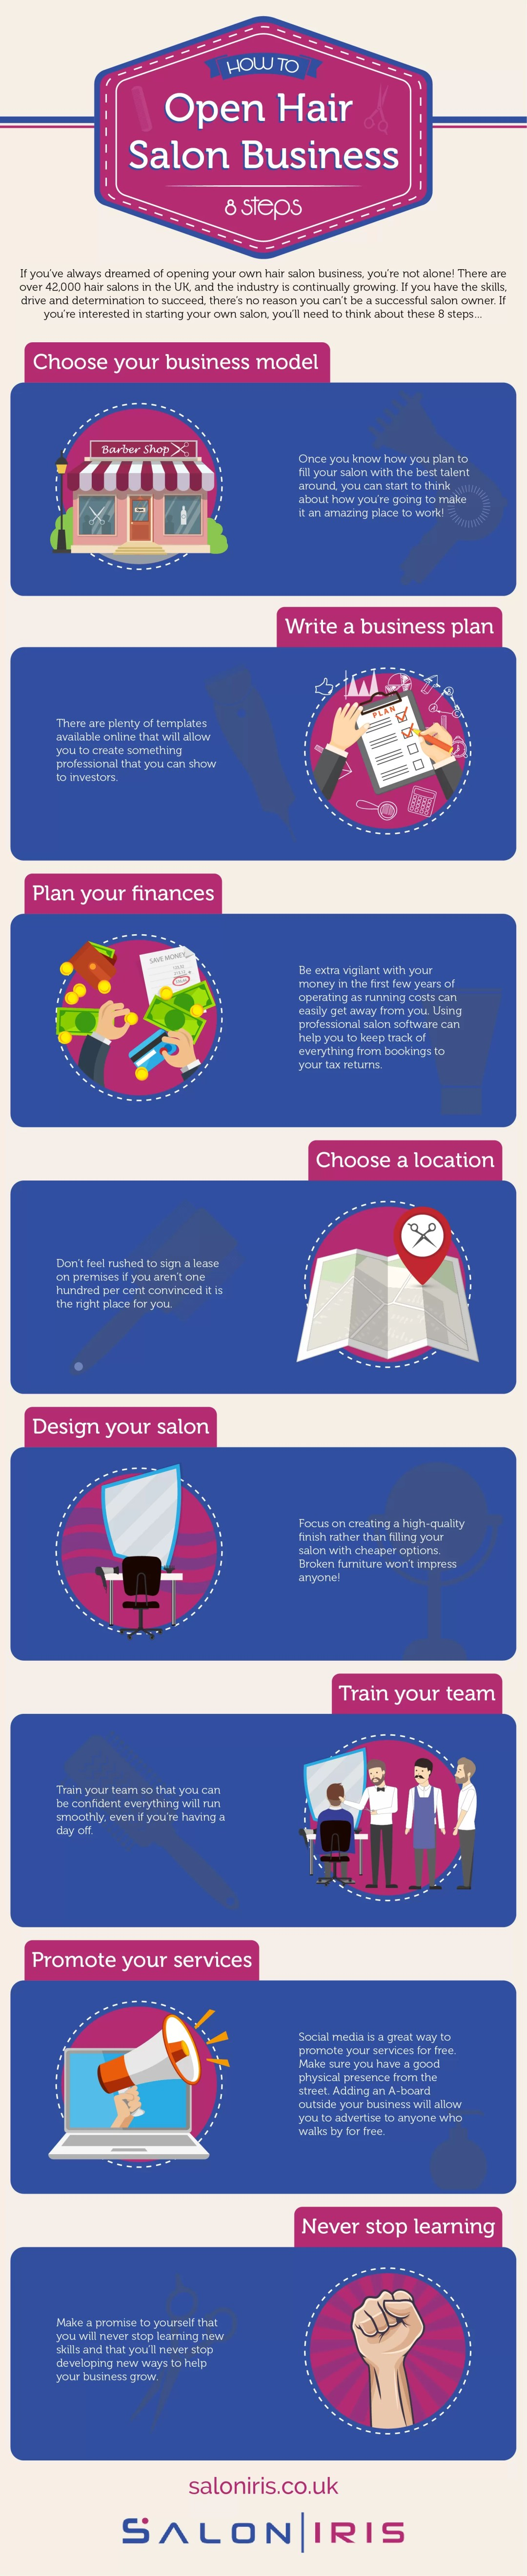 How To Open Hair Salon Business infographic